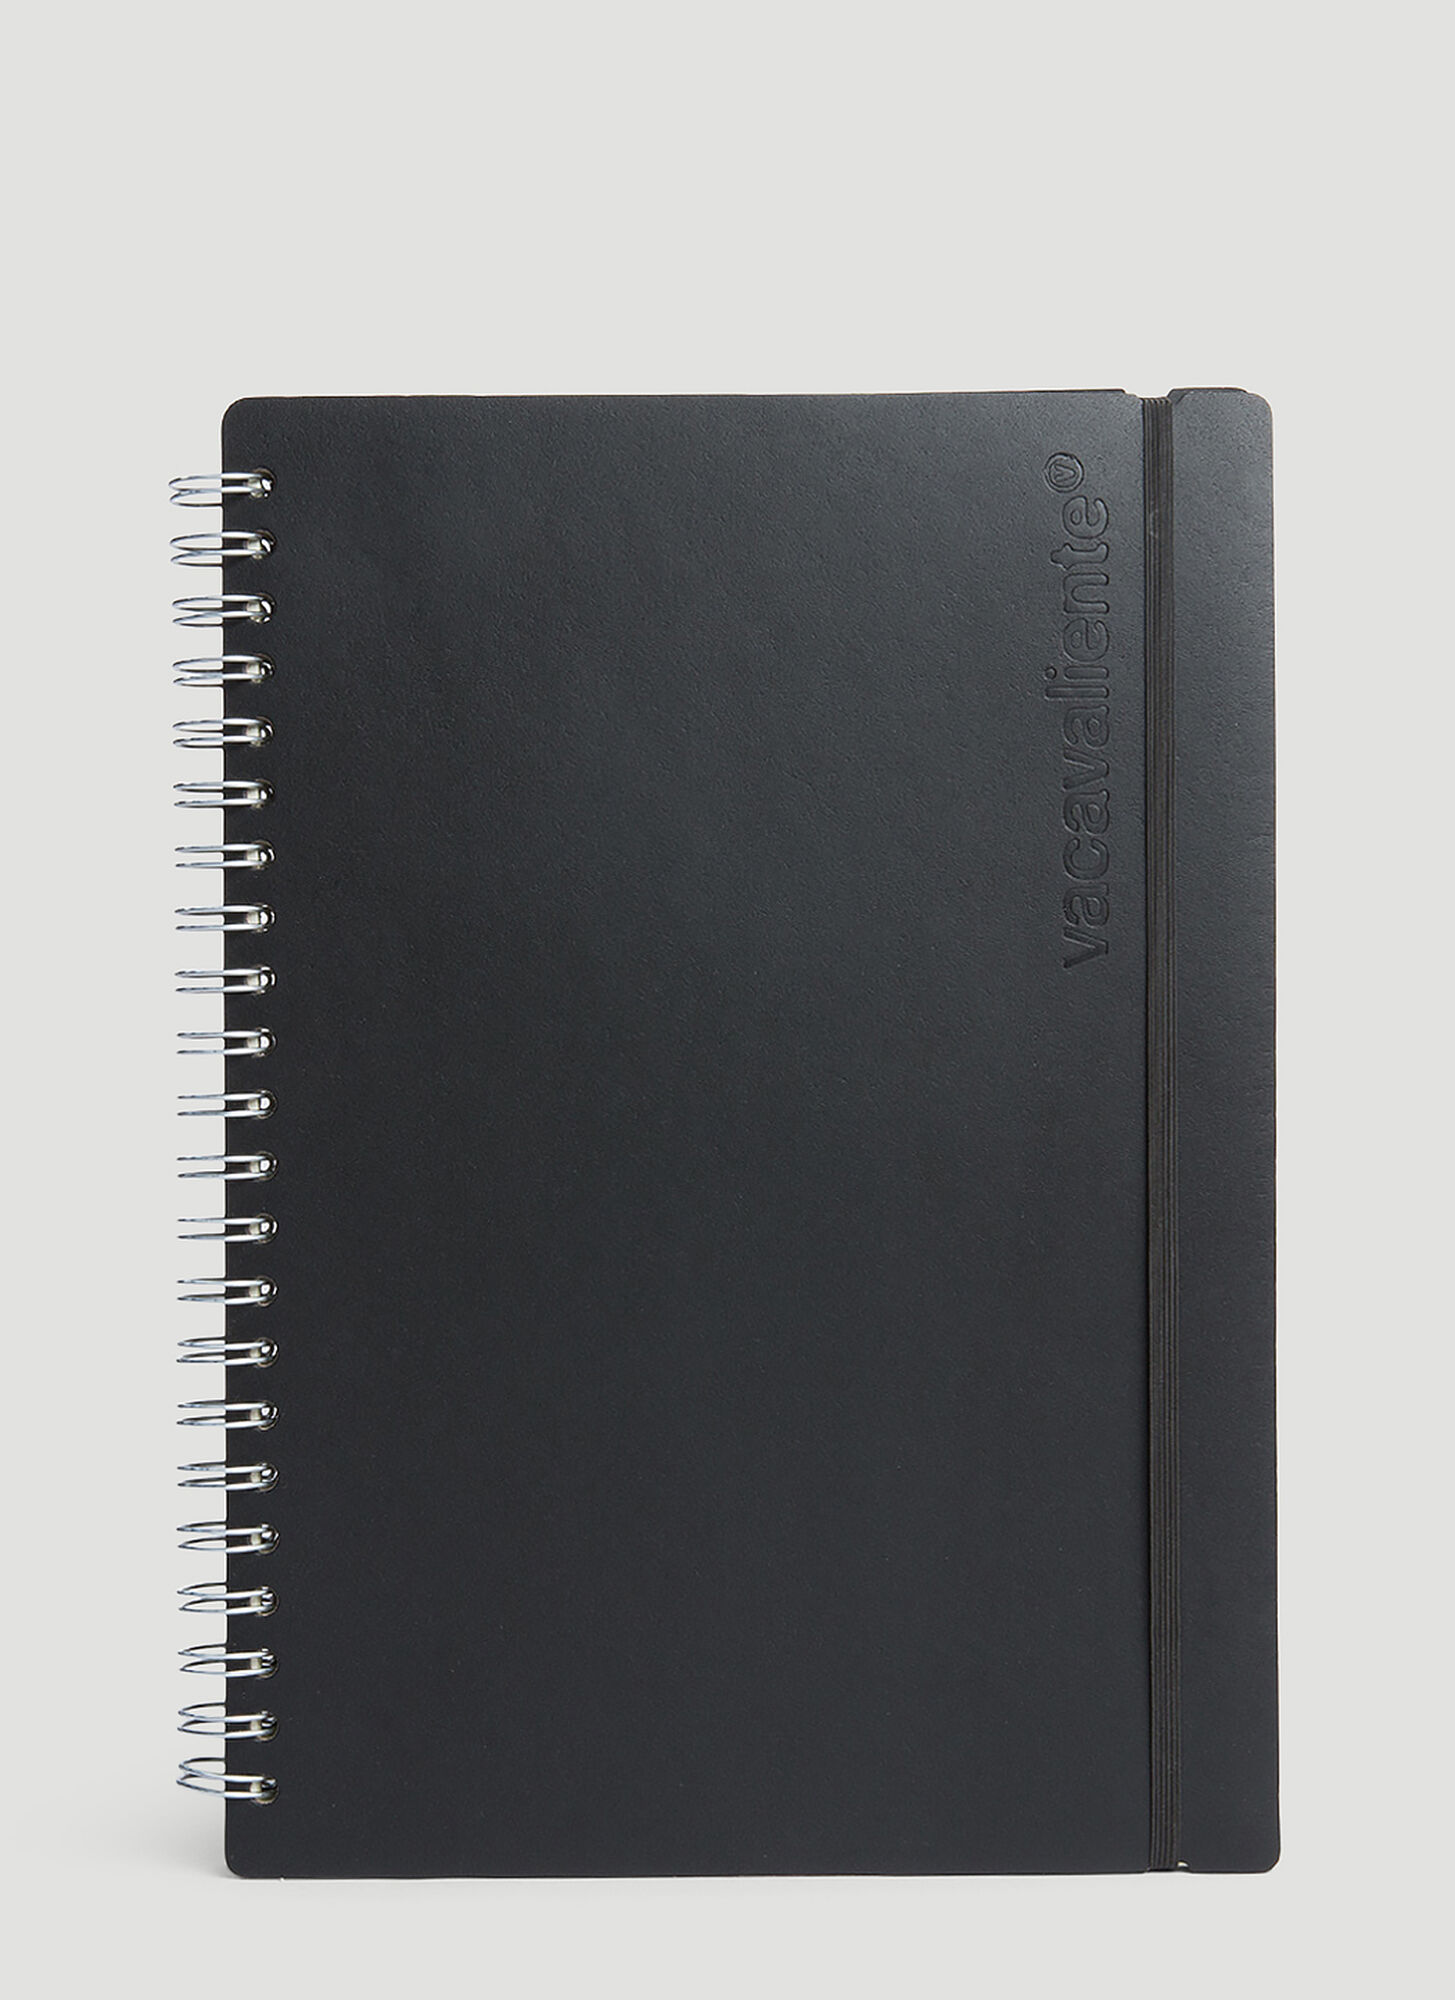 Vacavaliente A4 Ruled Notepad in Black